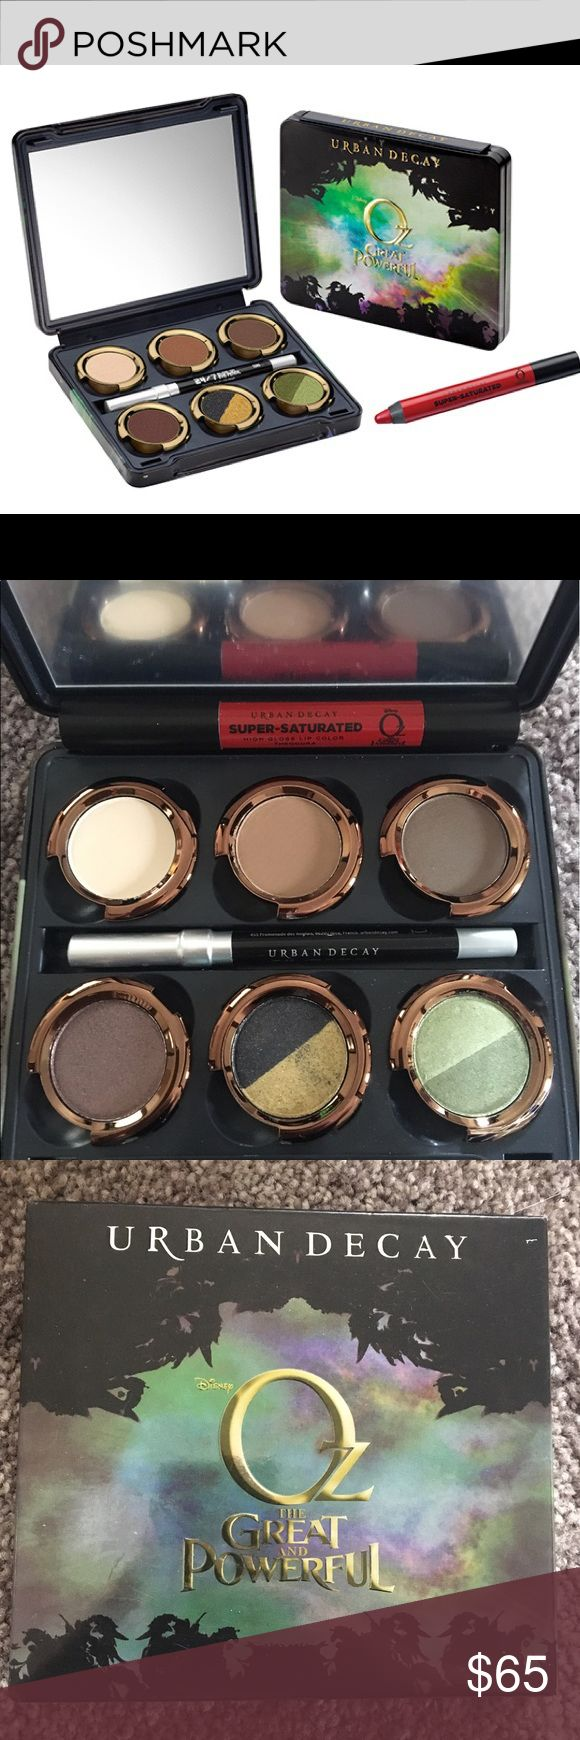 """Urban Decay: The Theodora Palette The Great and Powerful Oz: The Theodora Palette. New in box, never swatched. Mirror film still attached and includes look card. Authentic. Collector's item.   This limited edition (has long been sold out) palette is all about the bad witch! This set includes """"duo-shades"""" that are split in half, w/ a different color on each side of the pan. It also comes with a 24/7 Glide-on Eye Pencil & a Super-Saturated High Gloss Lip Color pencil. Great value!   Bundle to…"""